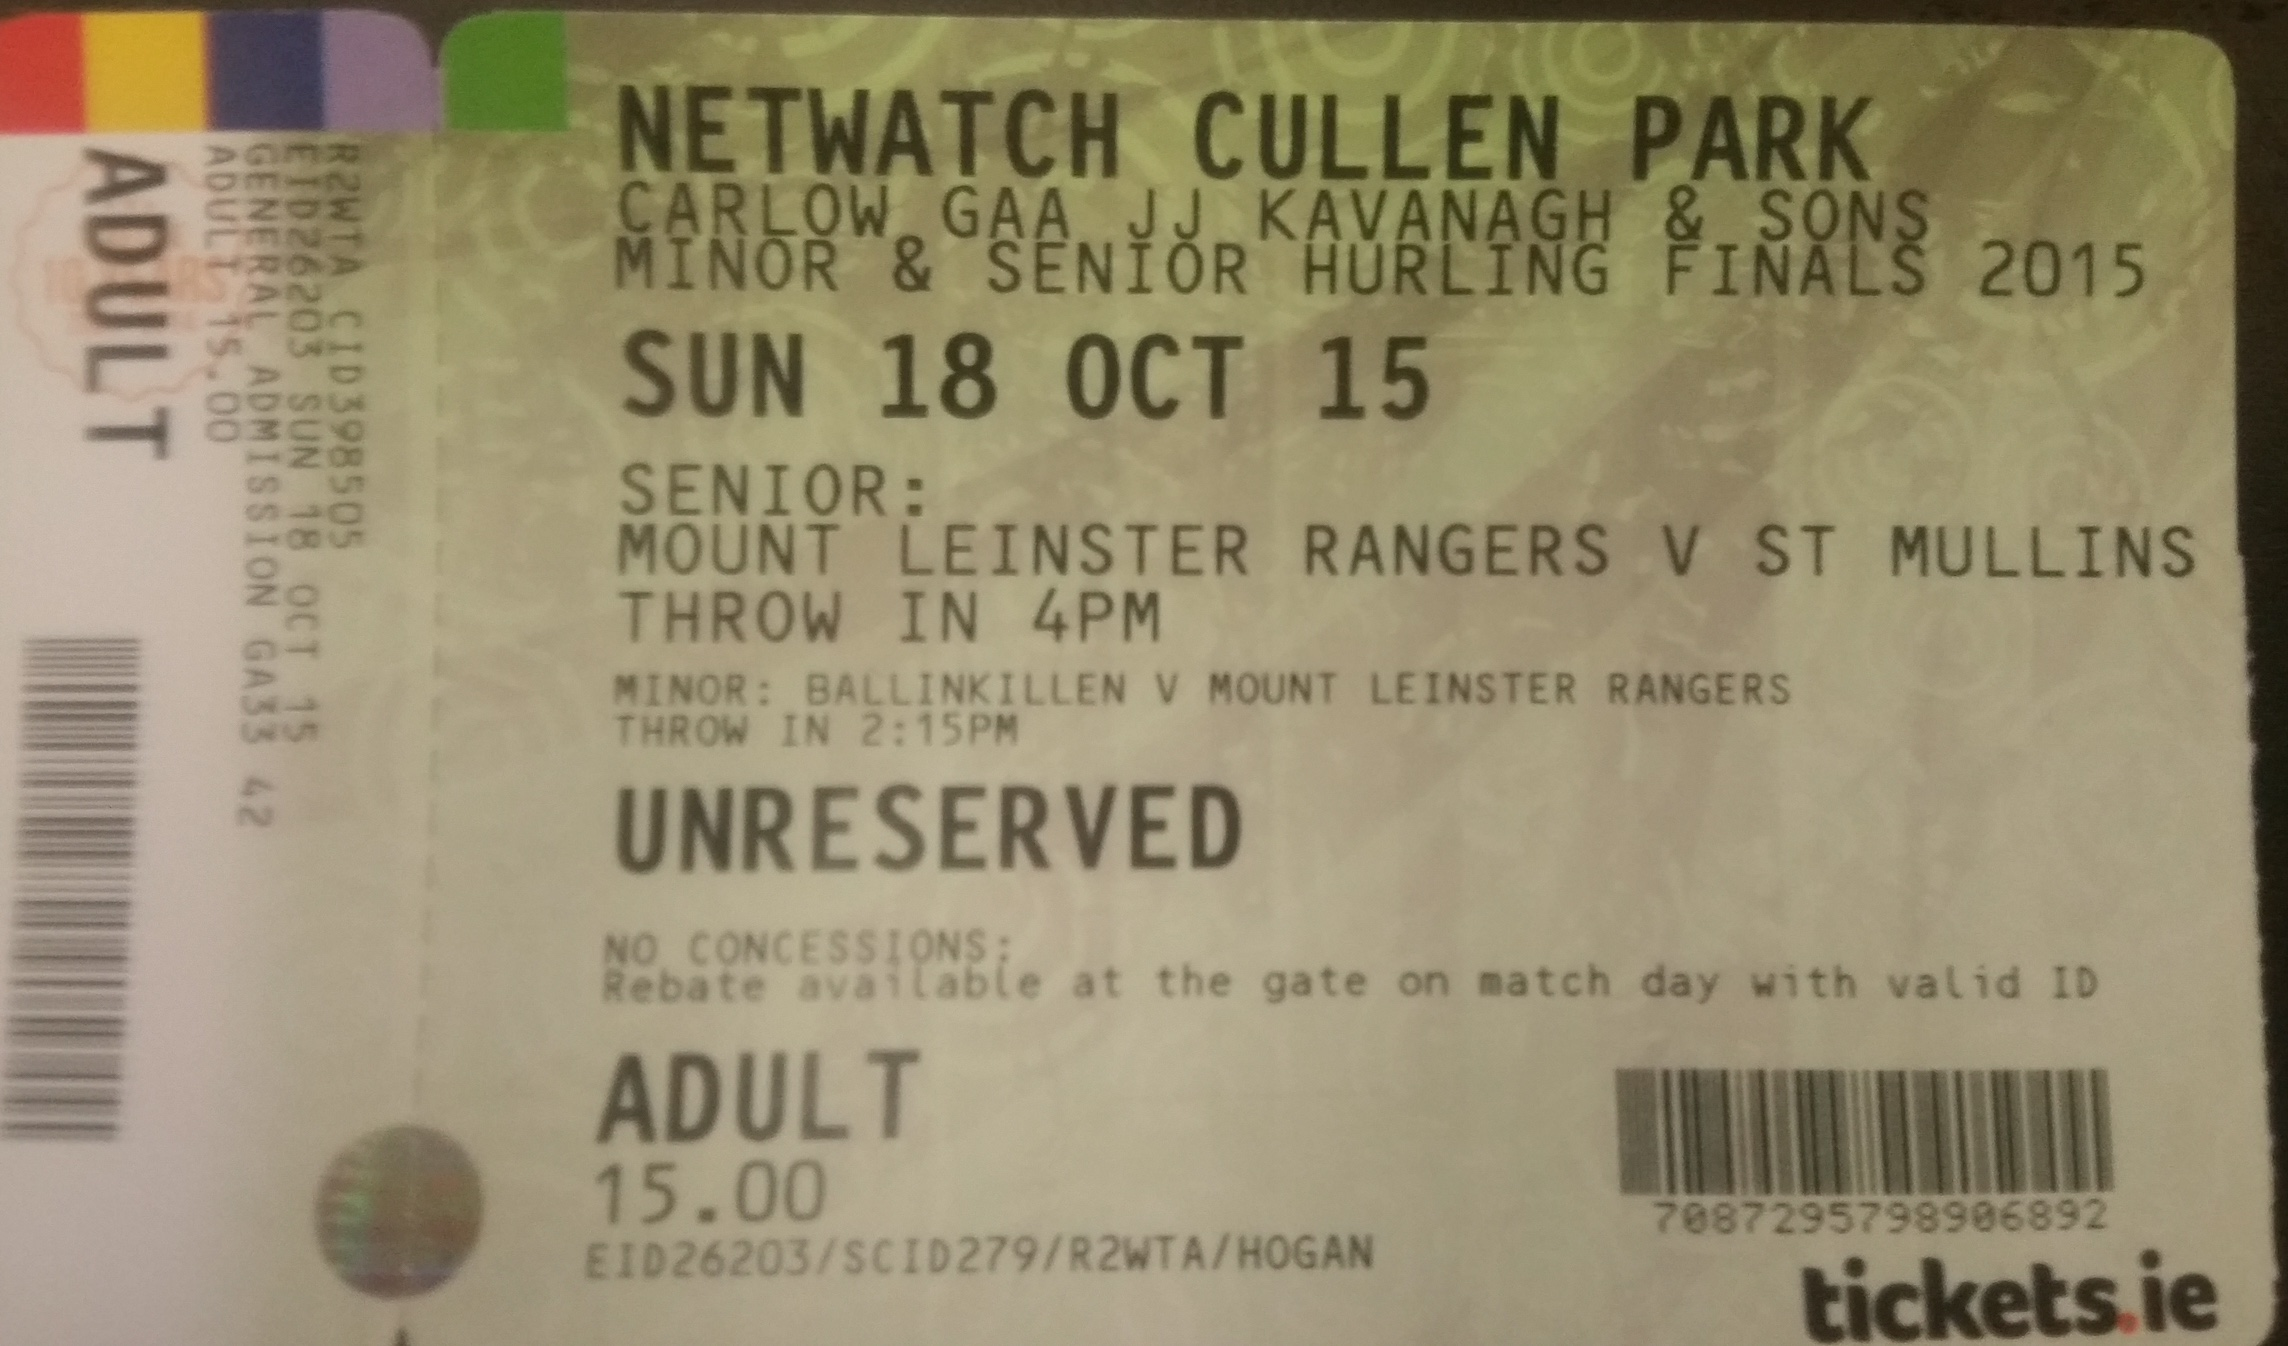 hurling tickets on sale now !!!